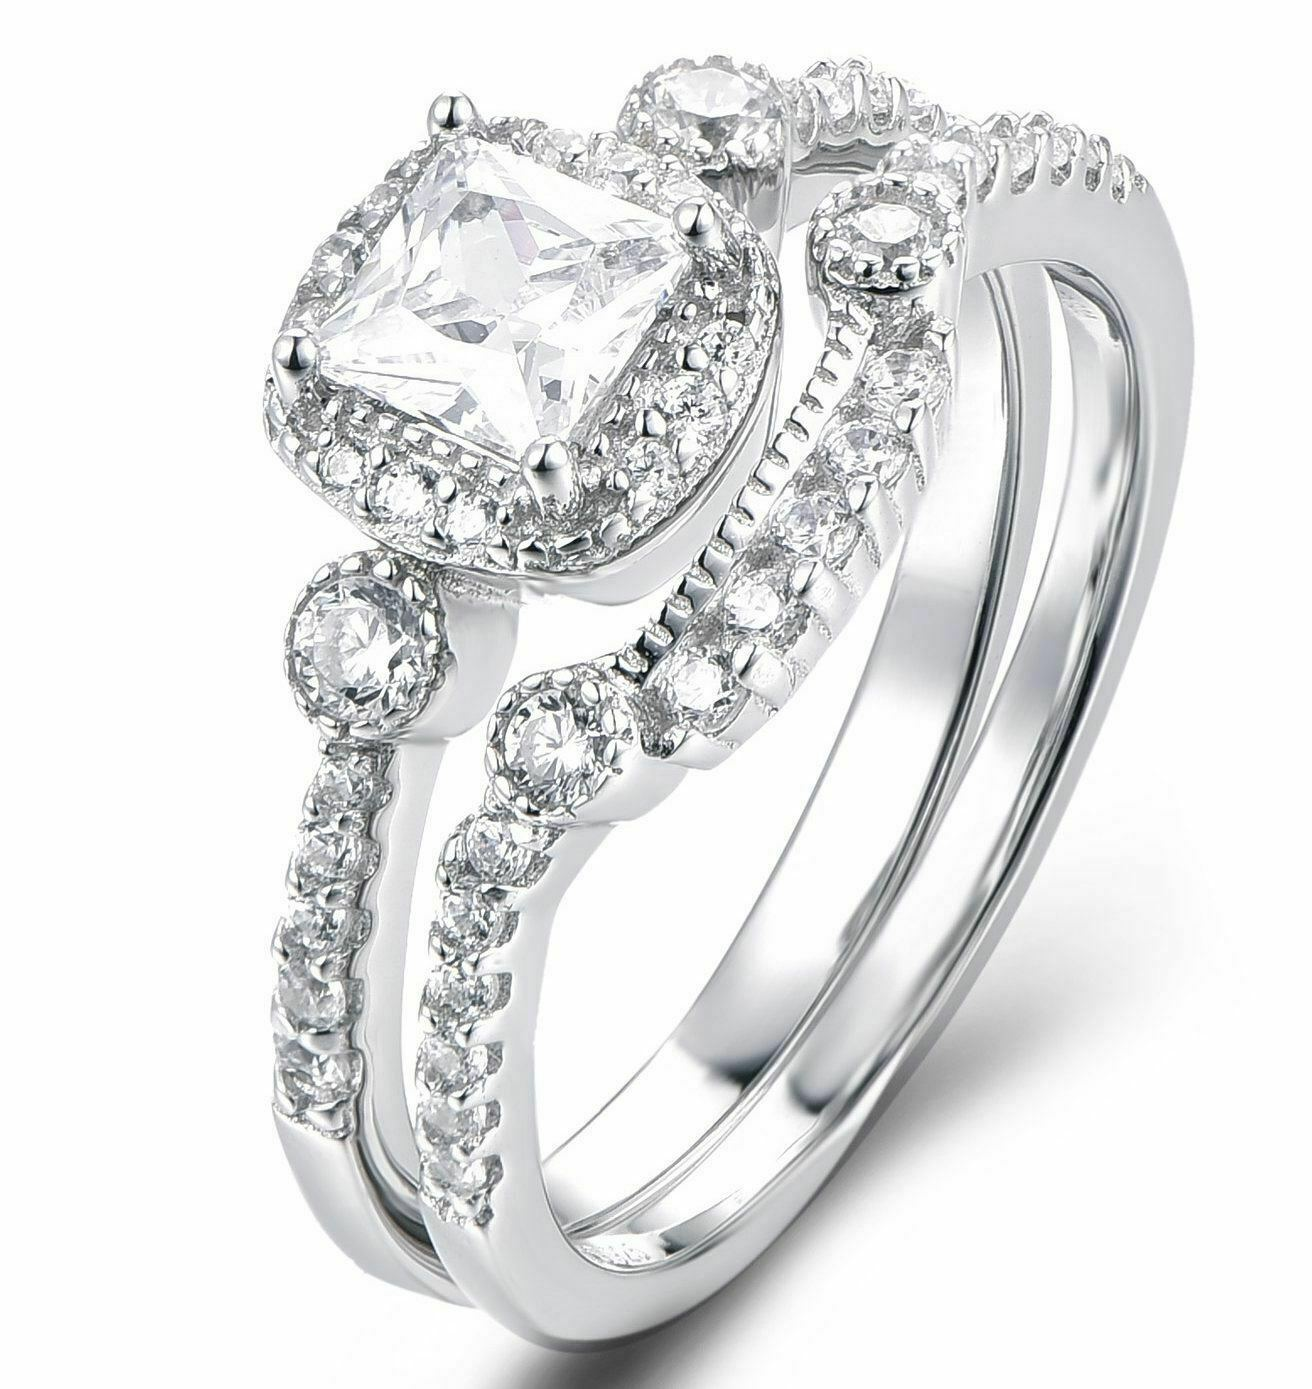 Princess Cut Diamond Wedding Bridal Set 14K White gold Finish Engagement Ring